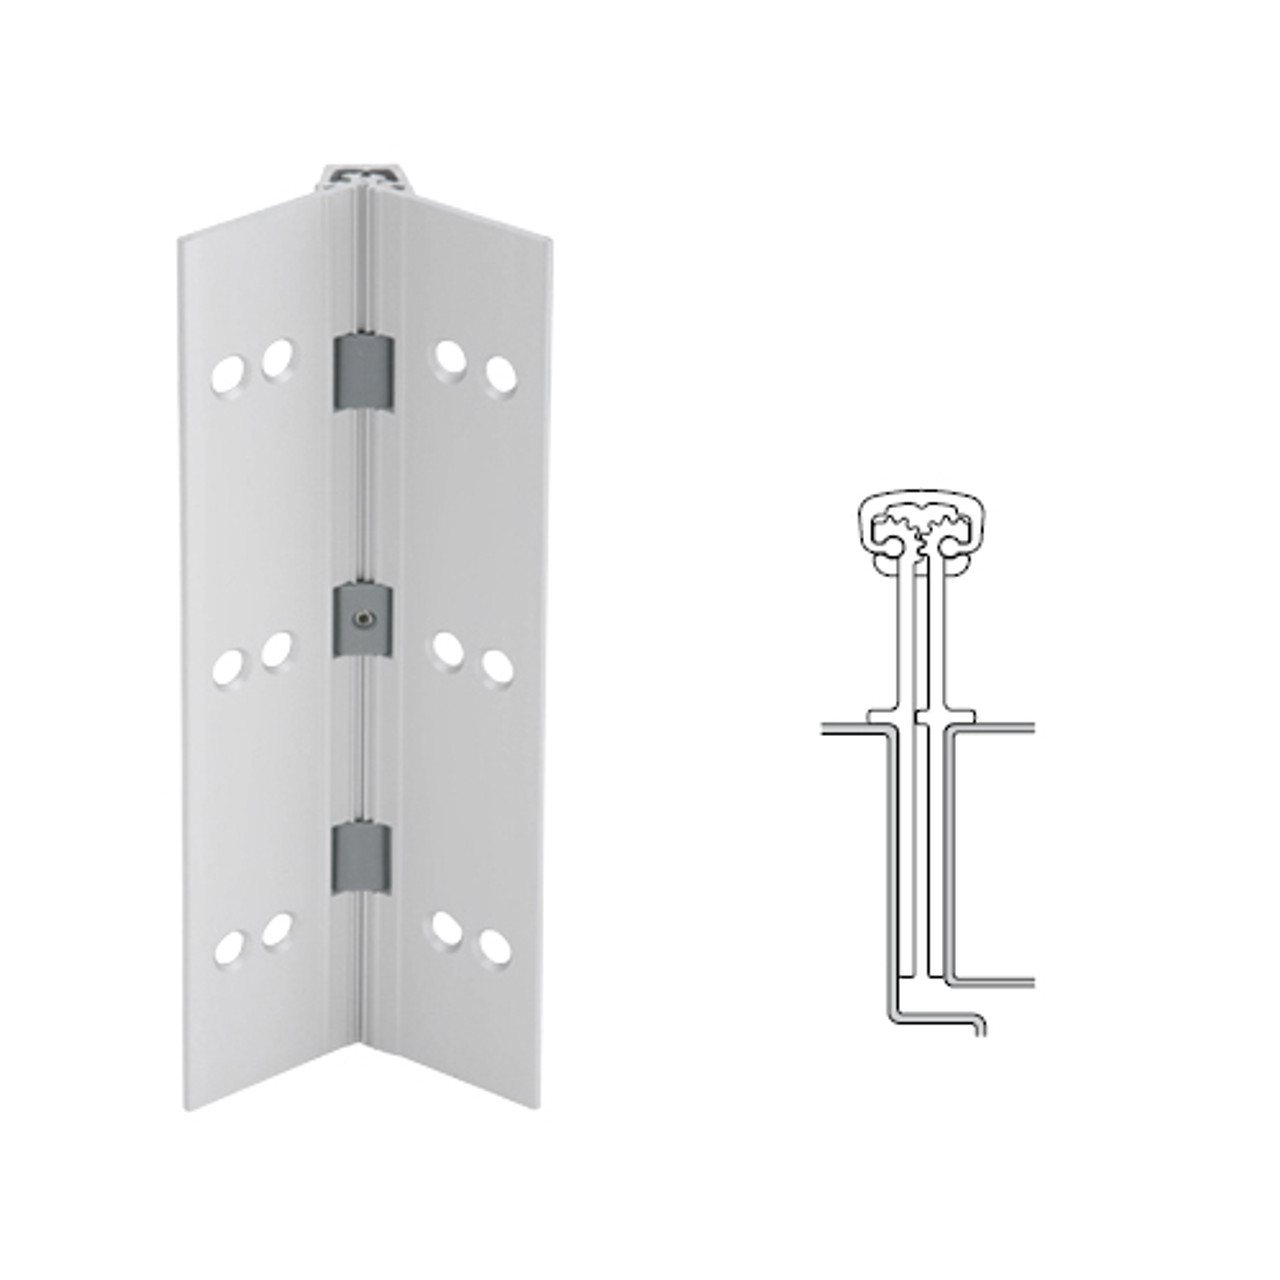 040XY-US28-95-TFWD IVES Full Mortise Continuous Geared Hinges with Thread Forming Screws in Satin Aluminum